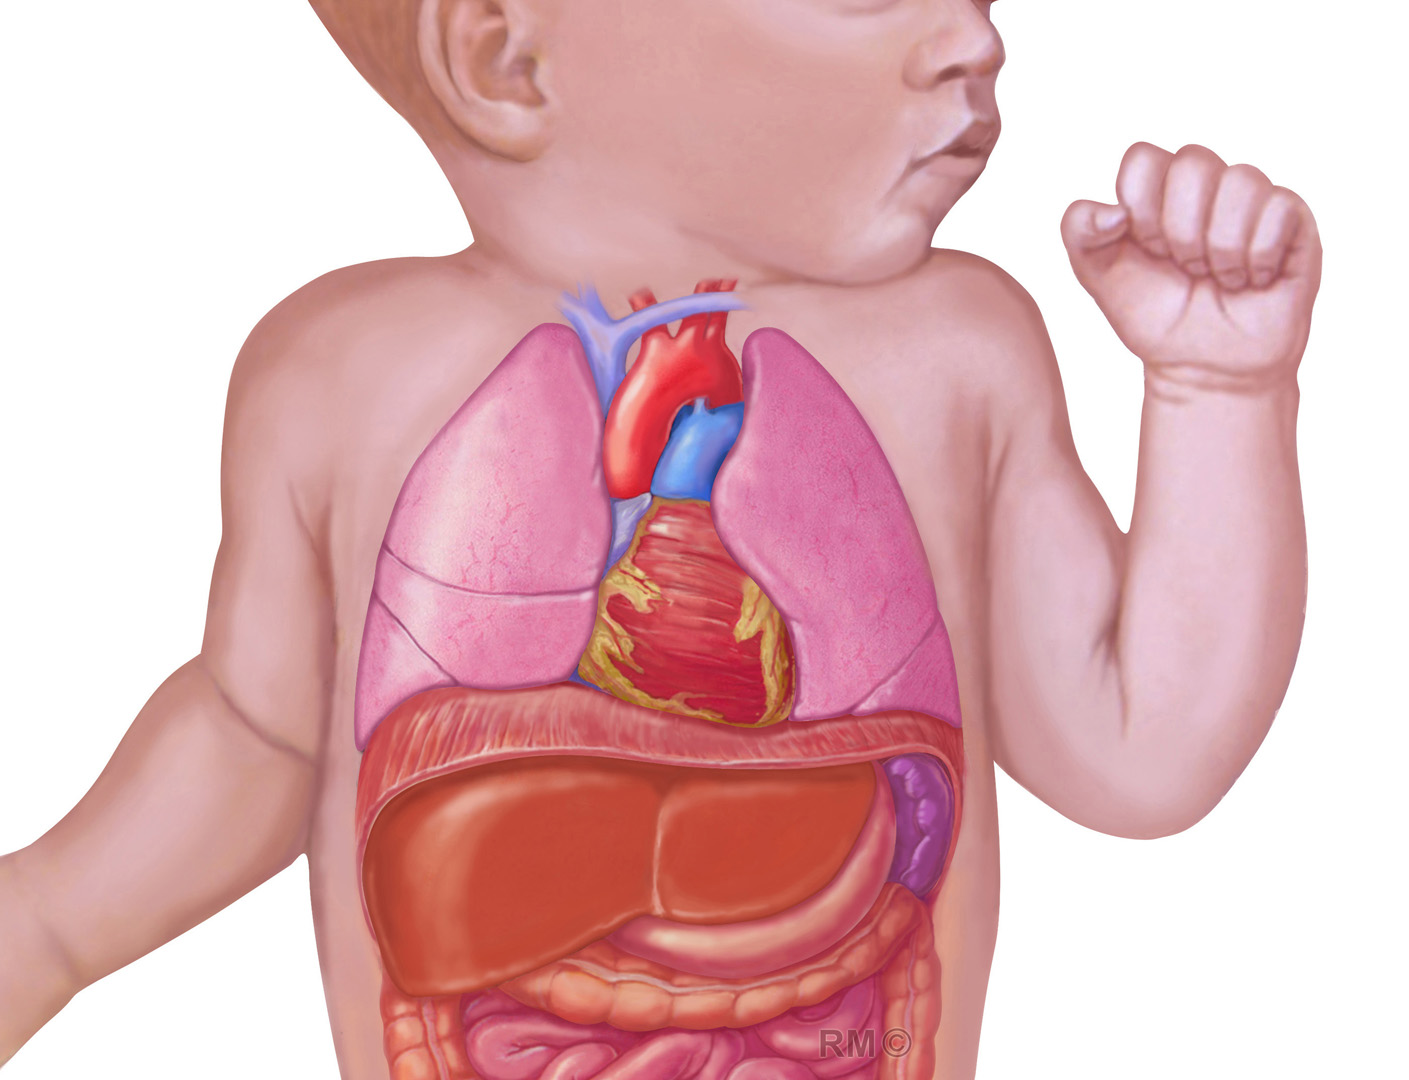 Illustration showing the organ arrangement of a normal healthy infant